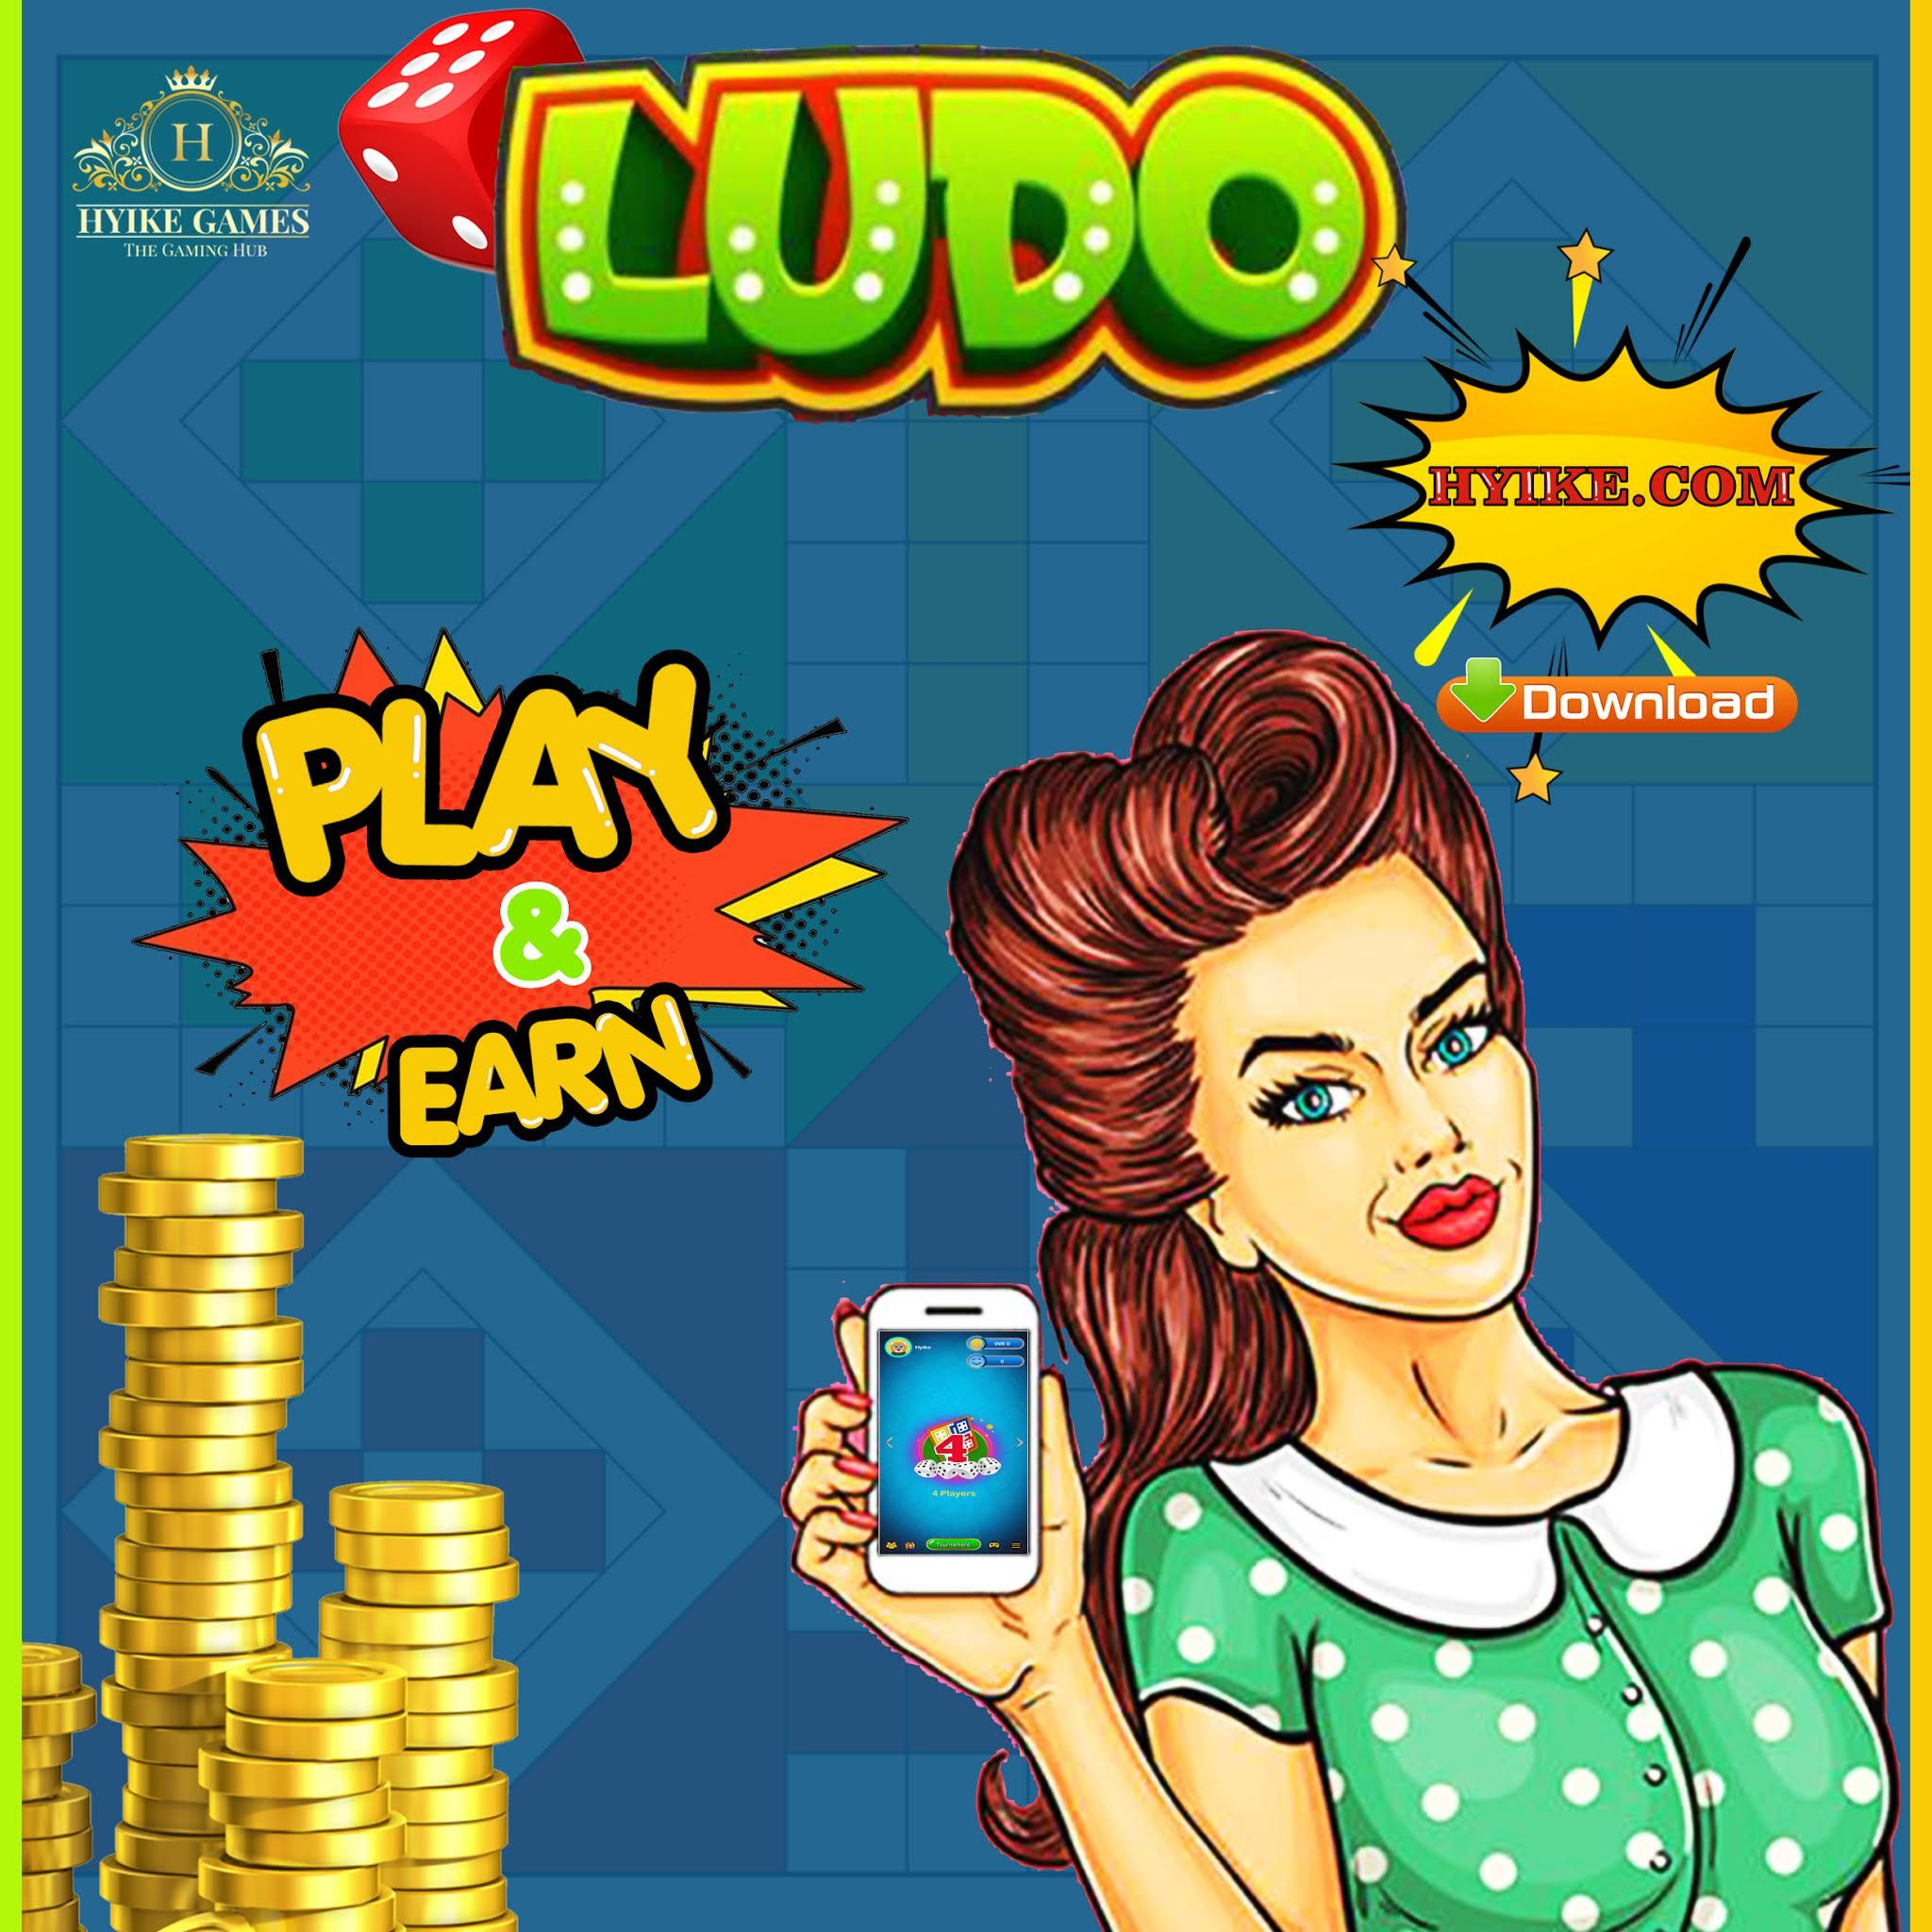 Play latest amazing HYIKE Ludo Game and earn. Compete with